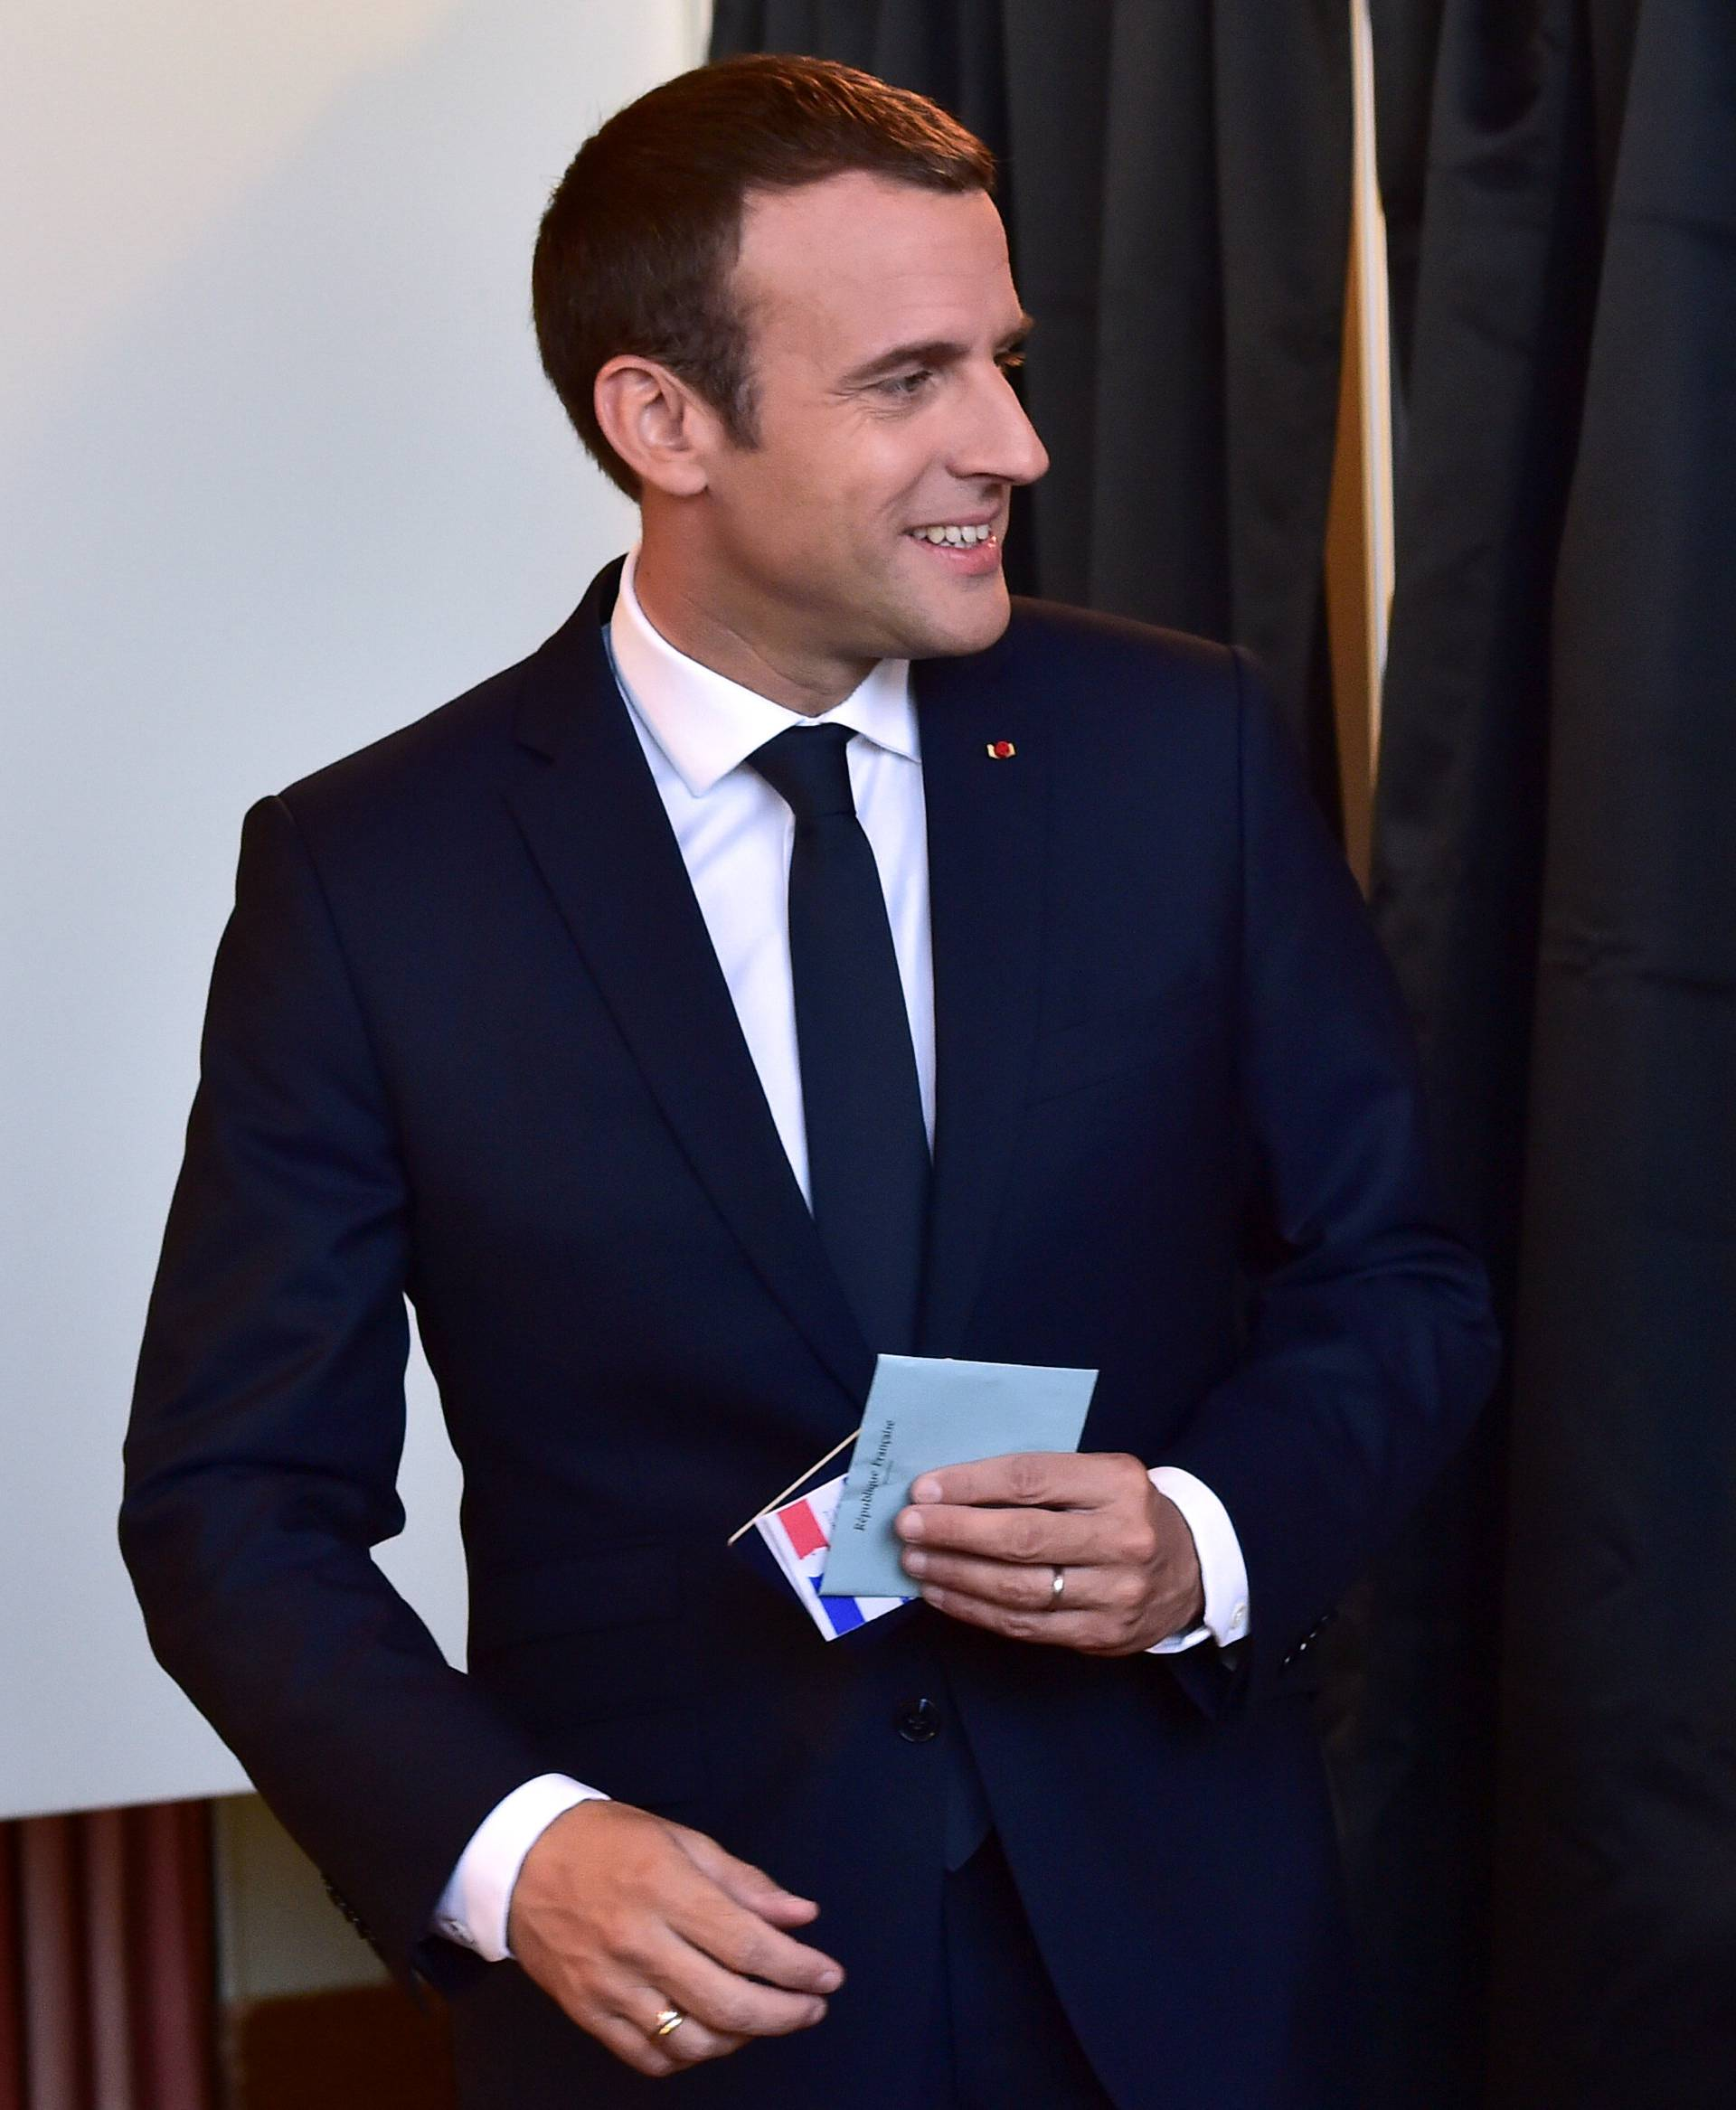 French President Emmanuel Macron hold his ballot before voting at a polling station in the second round parliamentary elections in Le Touquet